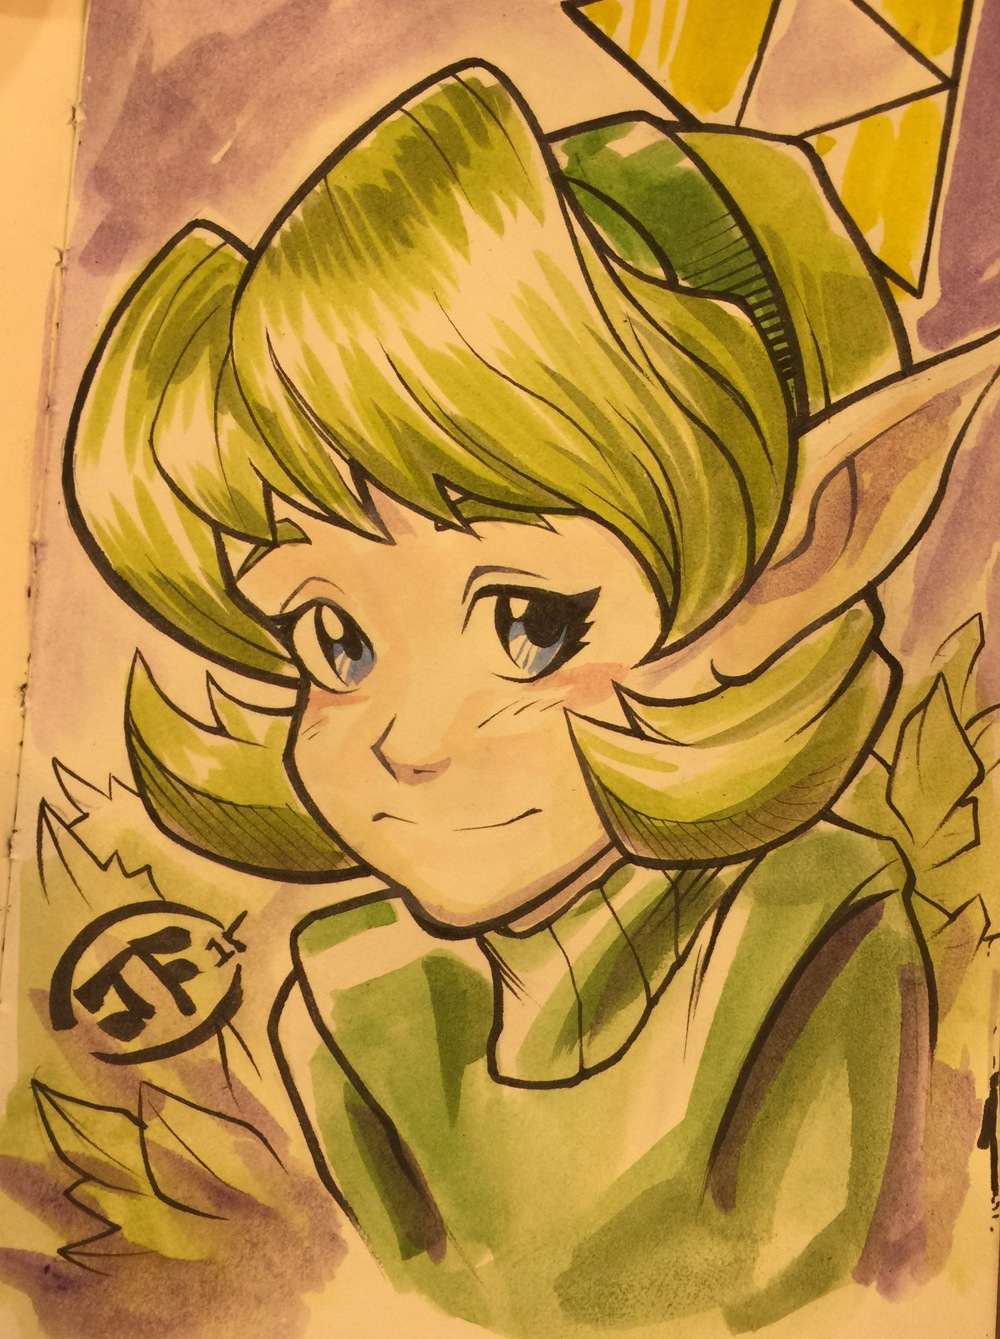 Saria Watercolor Commission Sketch (inks by Mostafa Moussa)